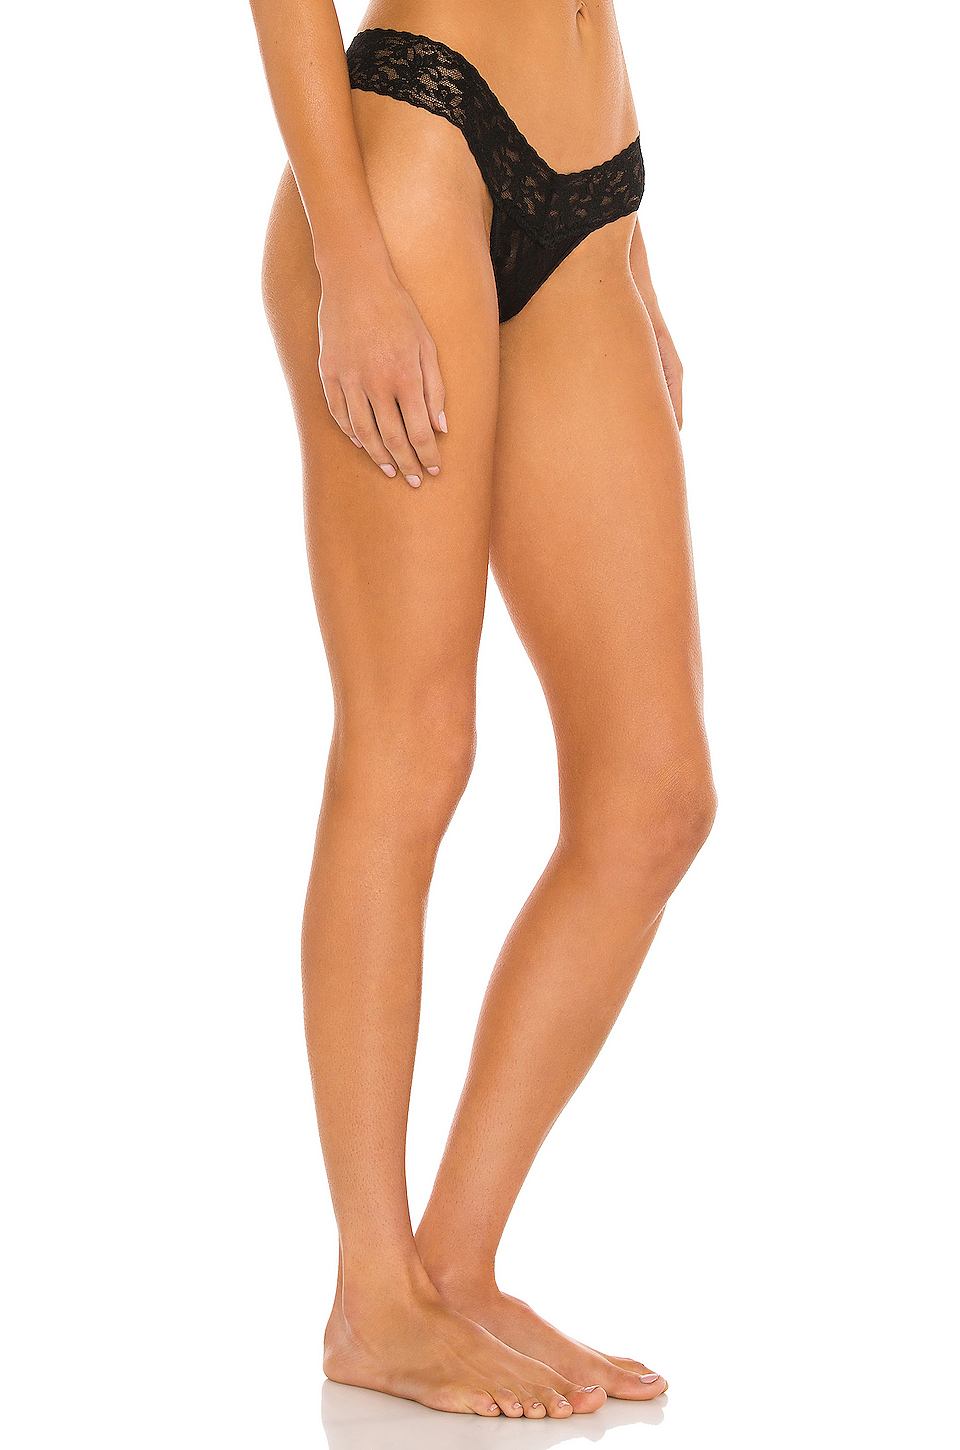 Hanky Panky Signature Lace Petite Low Rise Thong in Black